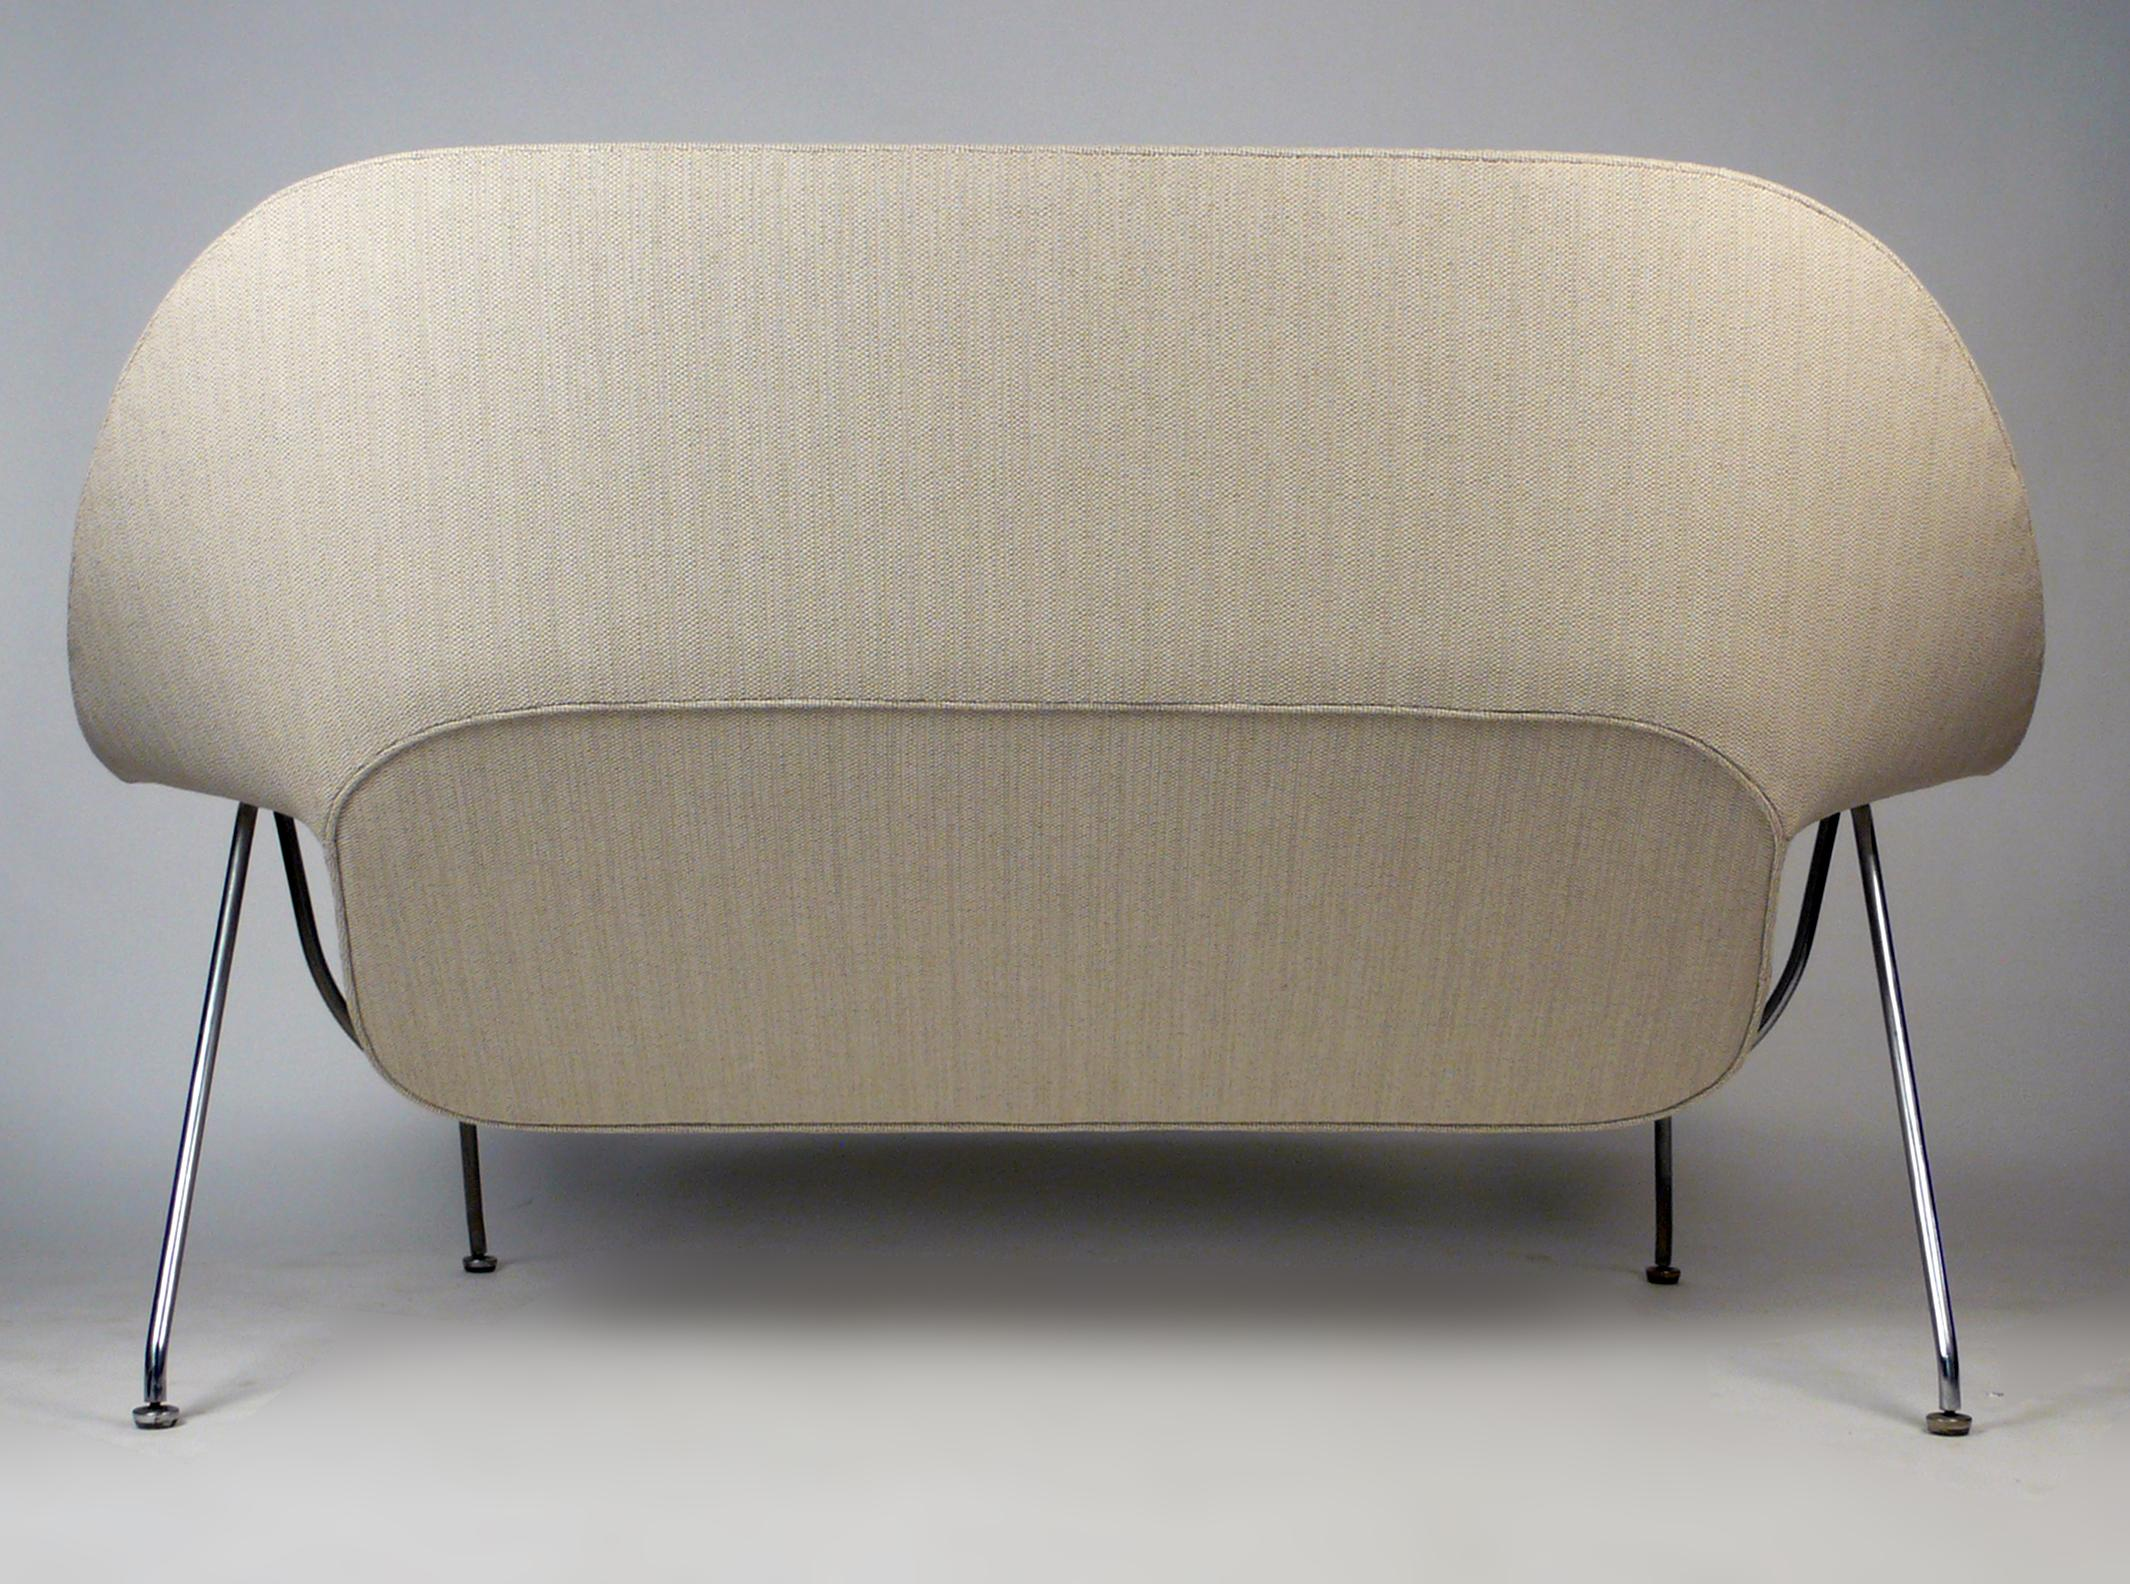 Attrayant 1950s Womb Sofa By Eero Saarinen For Knoll For Sale   Image 5 Of 10